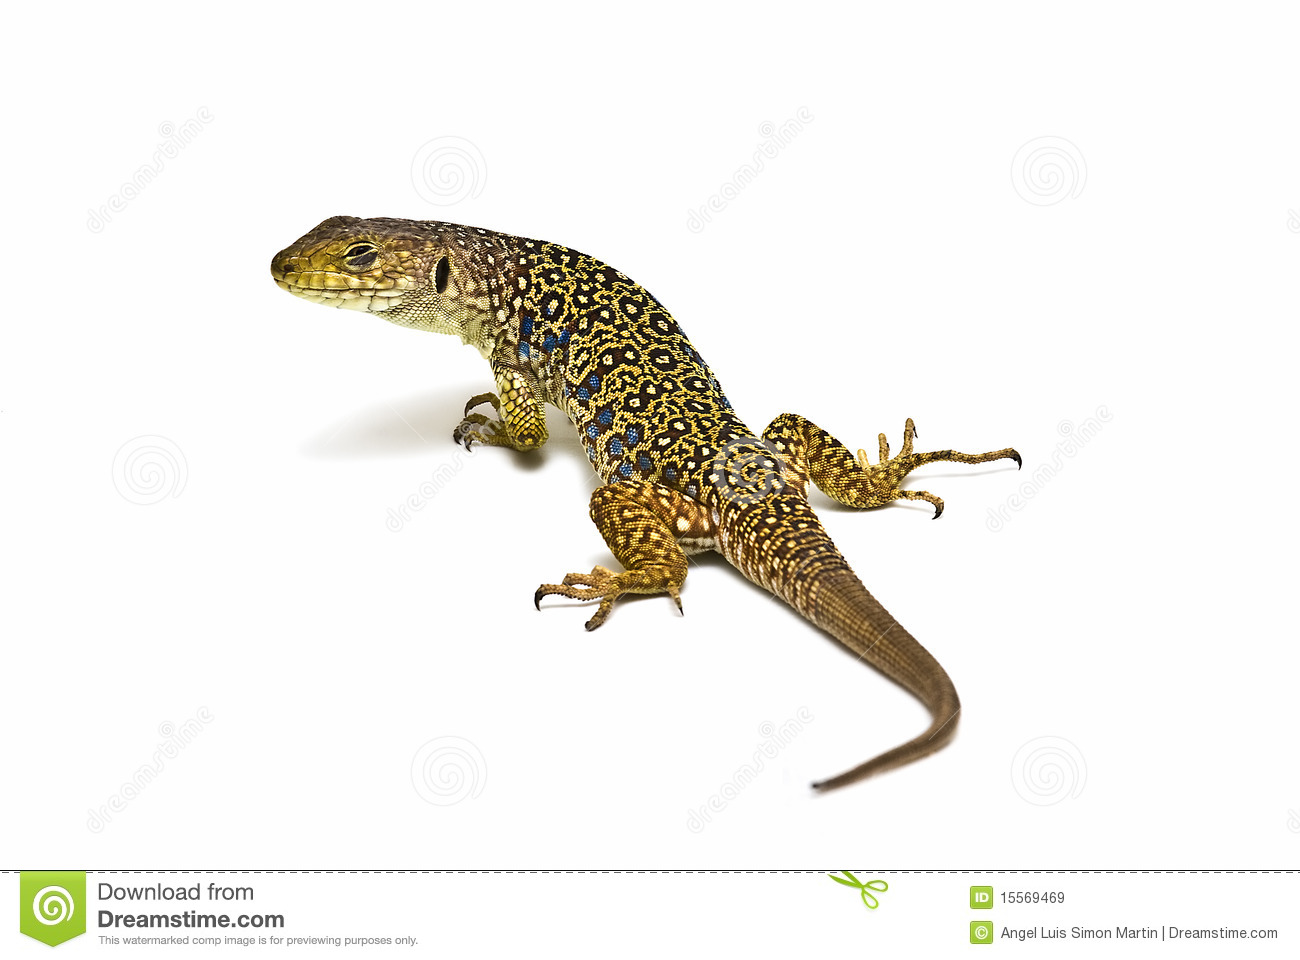 Ocellated Lizard clipart #13, Download drawings